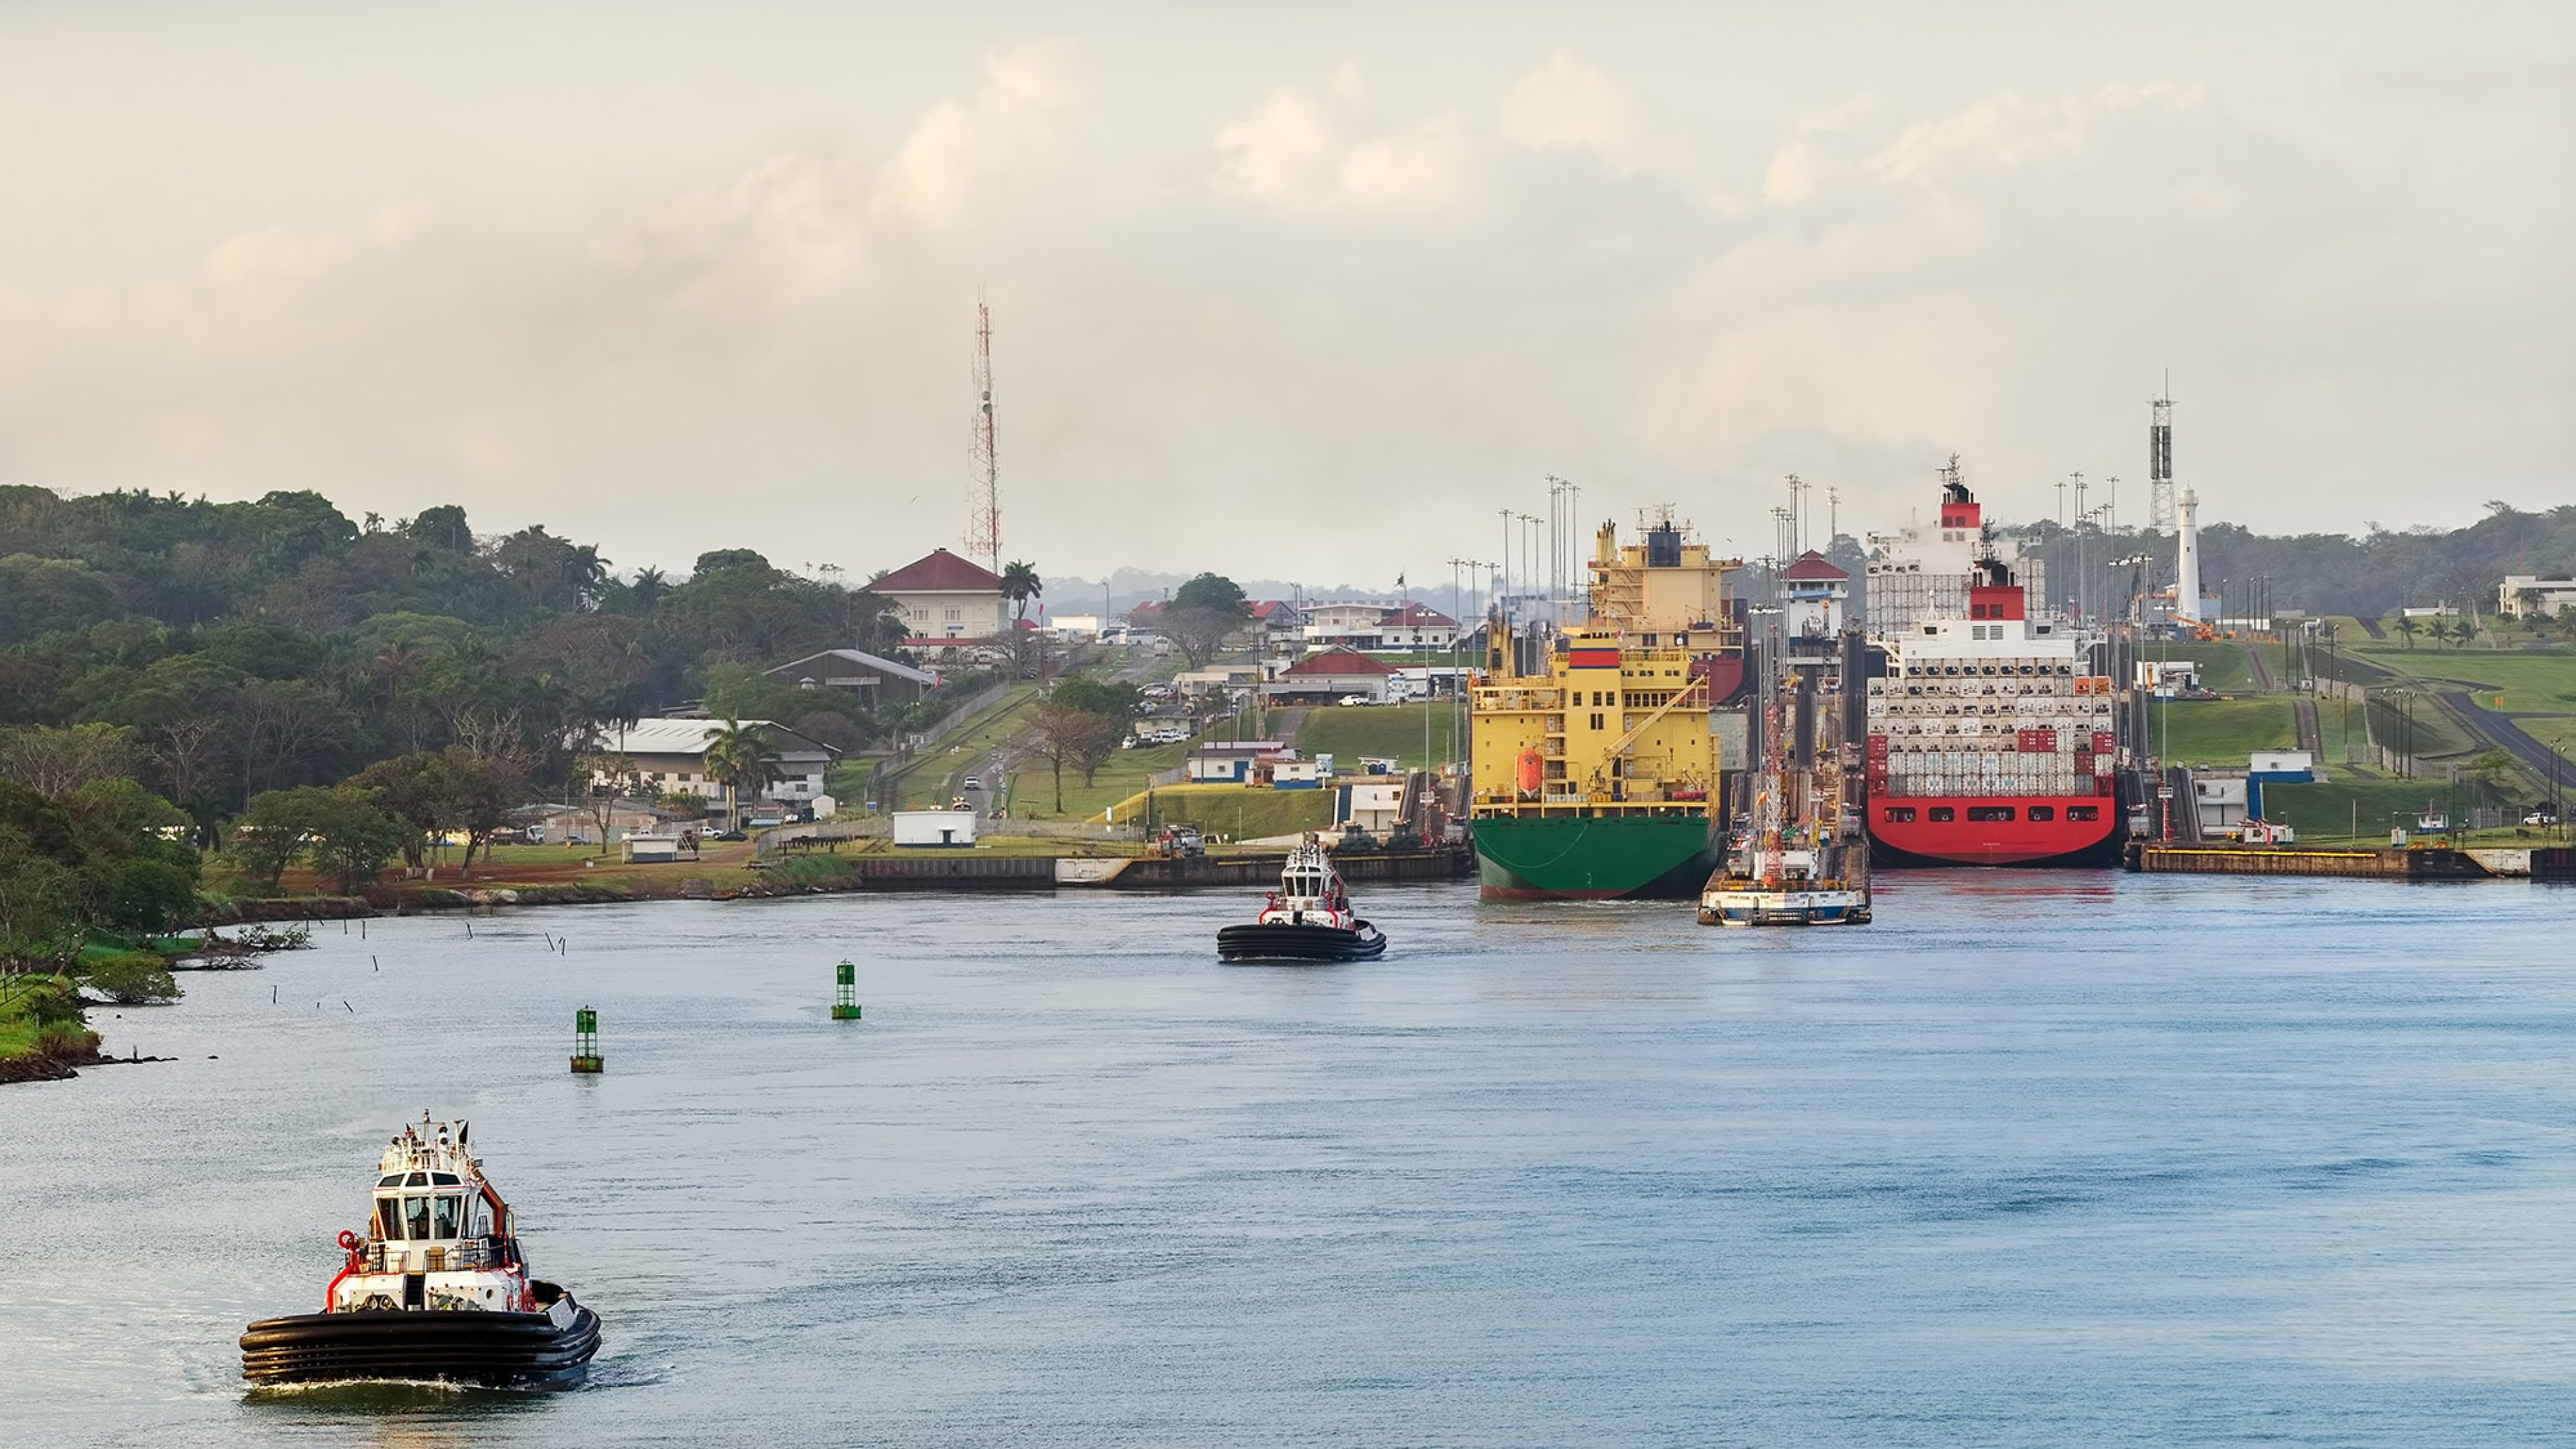 Cargo ships enter the Miraflores lock on the Panama Canal. Image courtesy of Adobe Stock